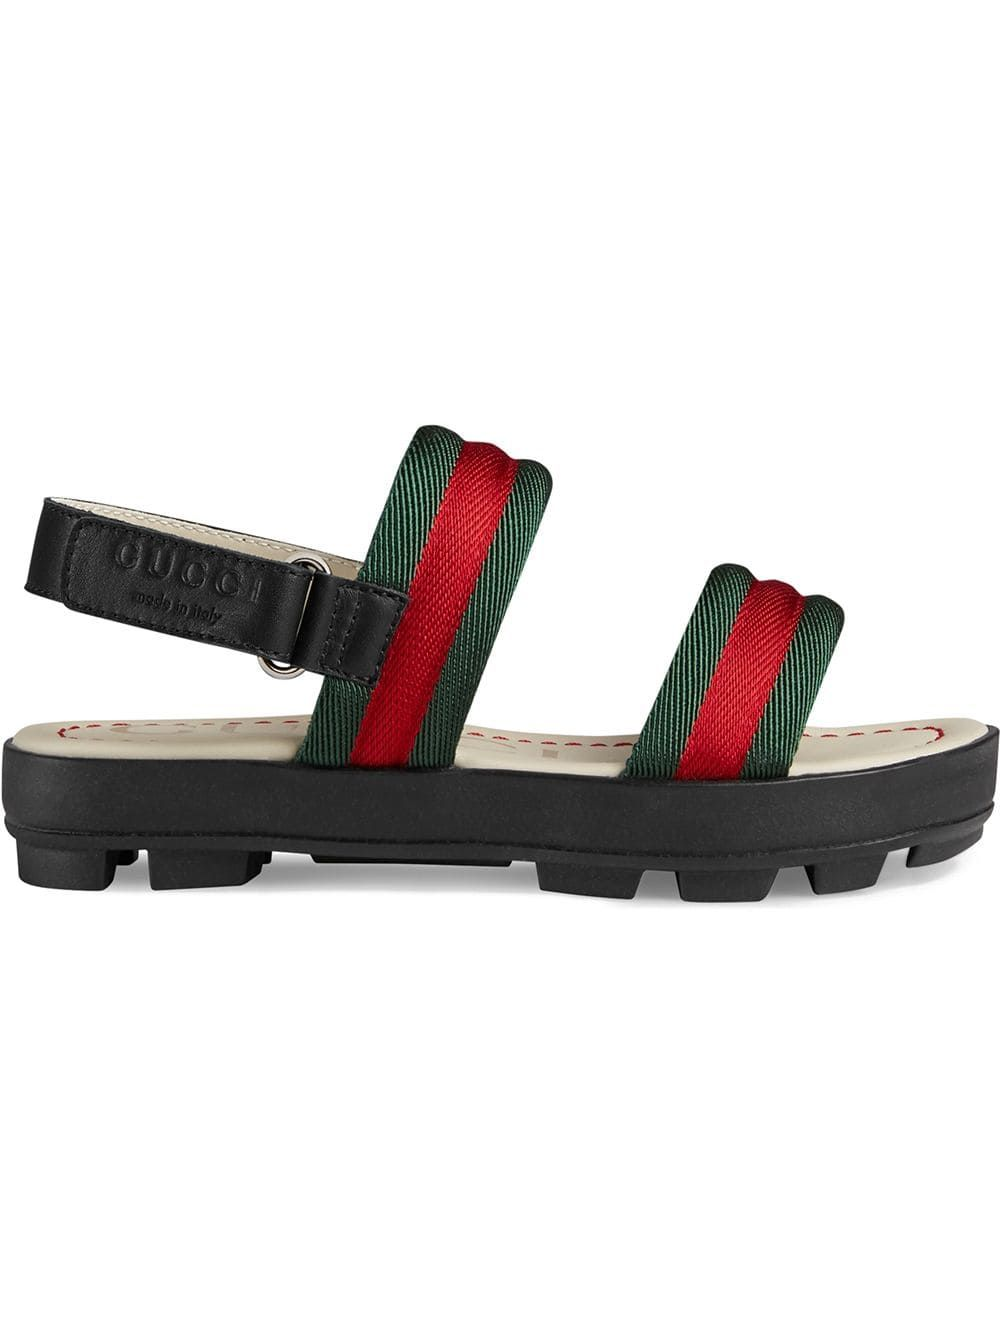 96ade3192 Gucci Kids Children's leather and Web sandal - Black in 2019 ...